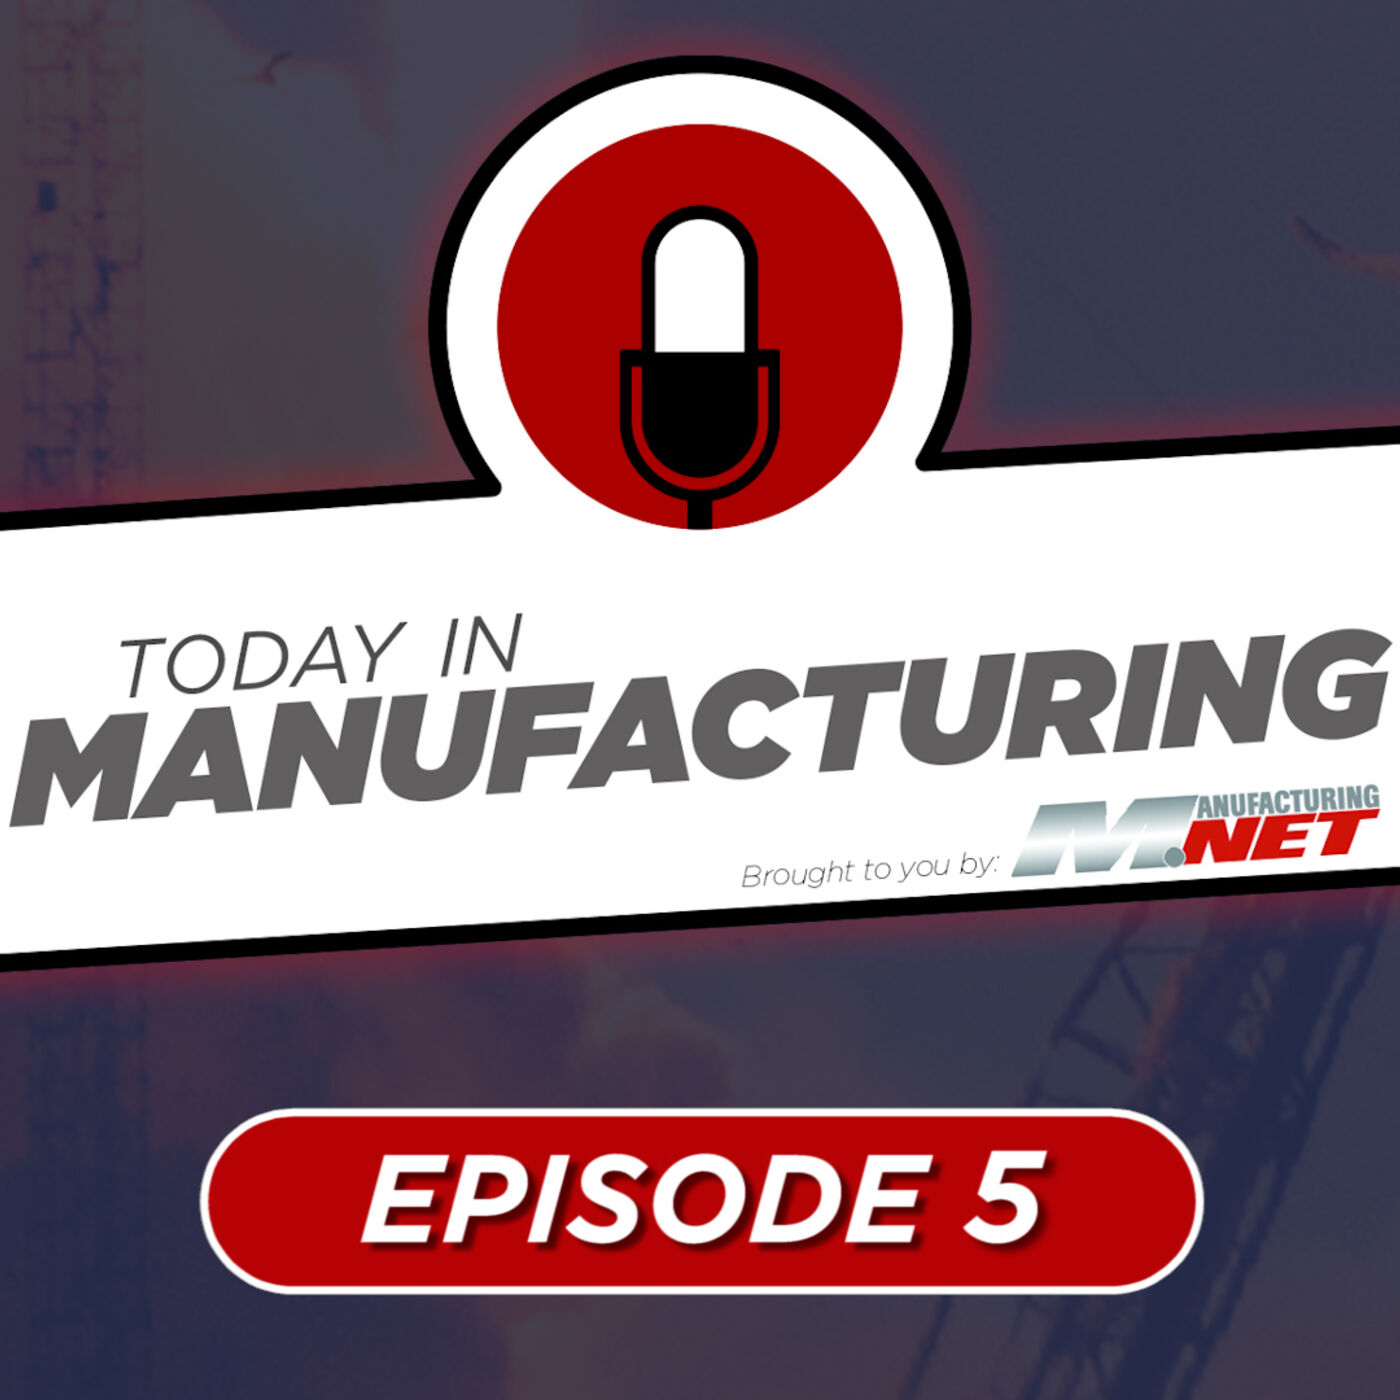 Today in Manufacturing Ep. 5: Another SpaceX Explosion, Lockheed Closes Old Plant, DARPA's New Weapon & Hyundai's Expensive Recall